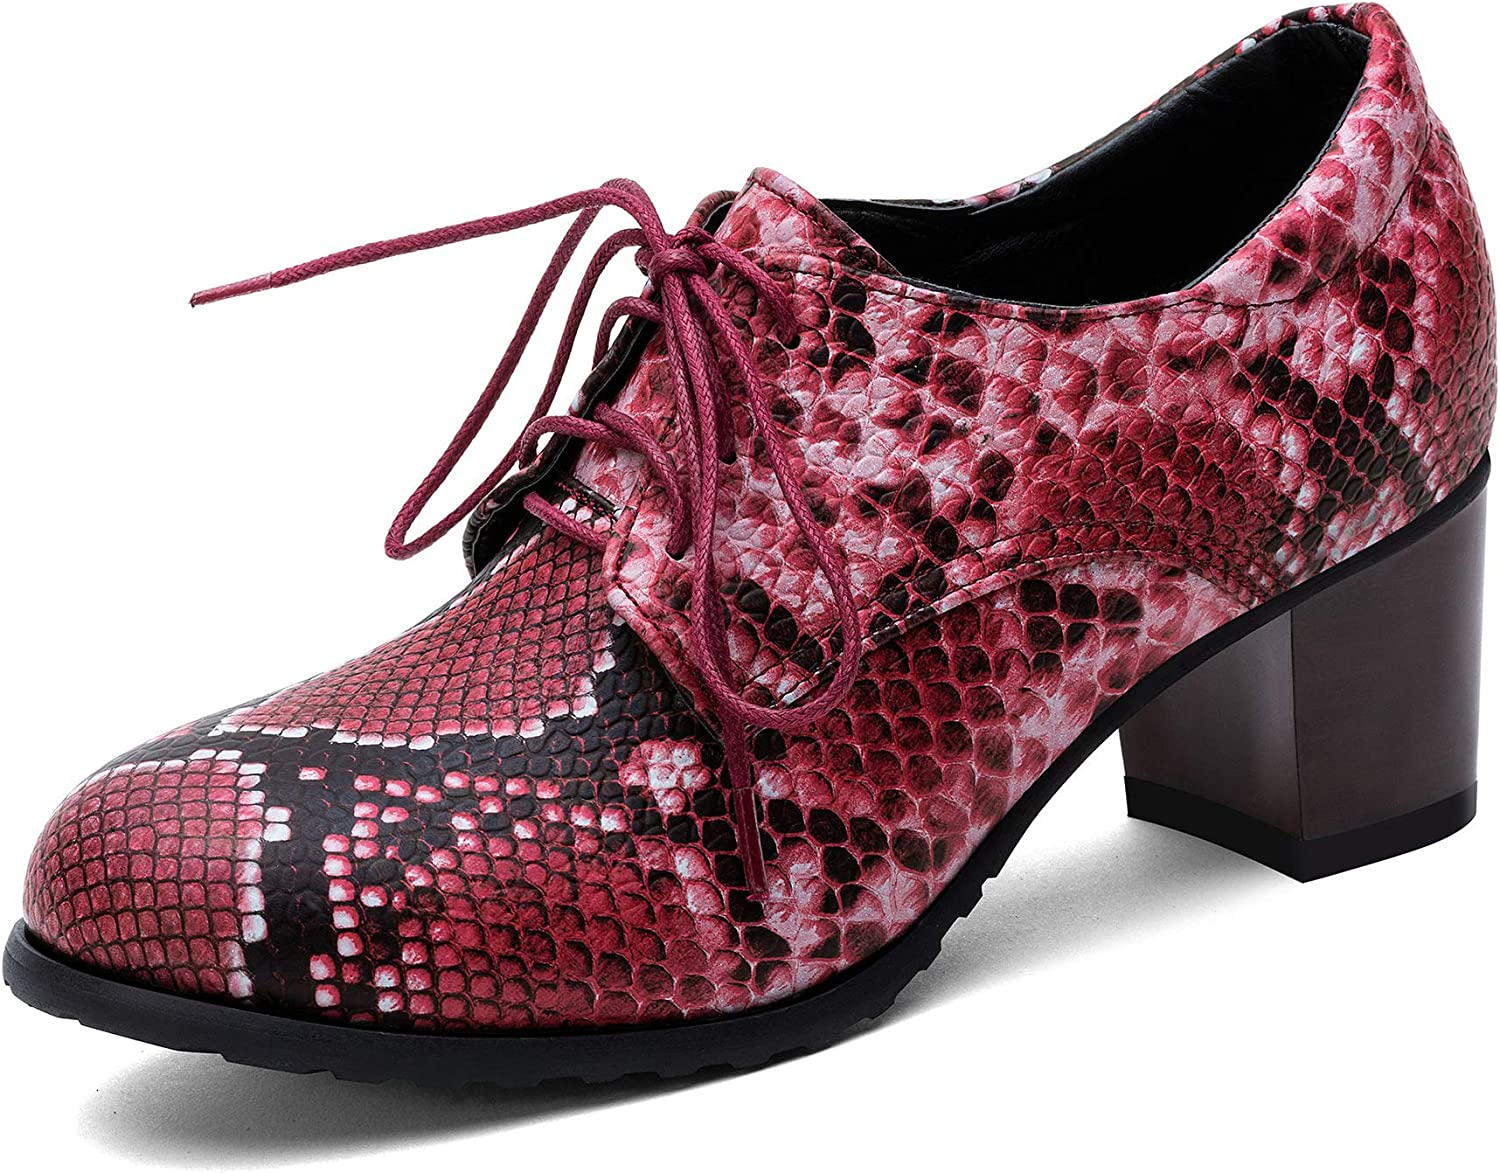 100FIXEO Women Excellent Fashion Snakeskin Oxford Block Brogues Shoes Max 73% OFF Mid